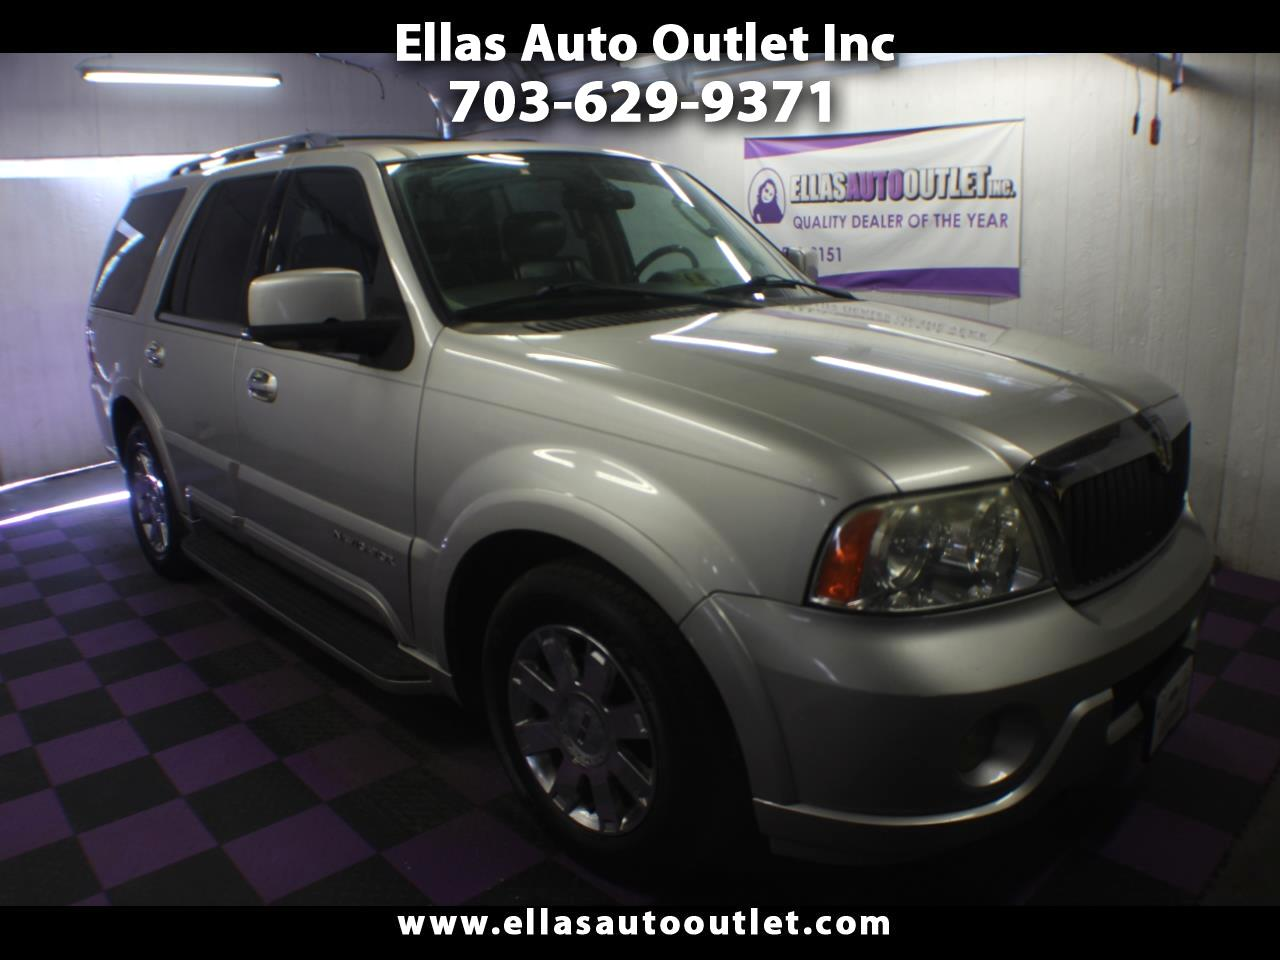 2003 Lincoln Navigator 4WD Ultimate